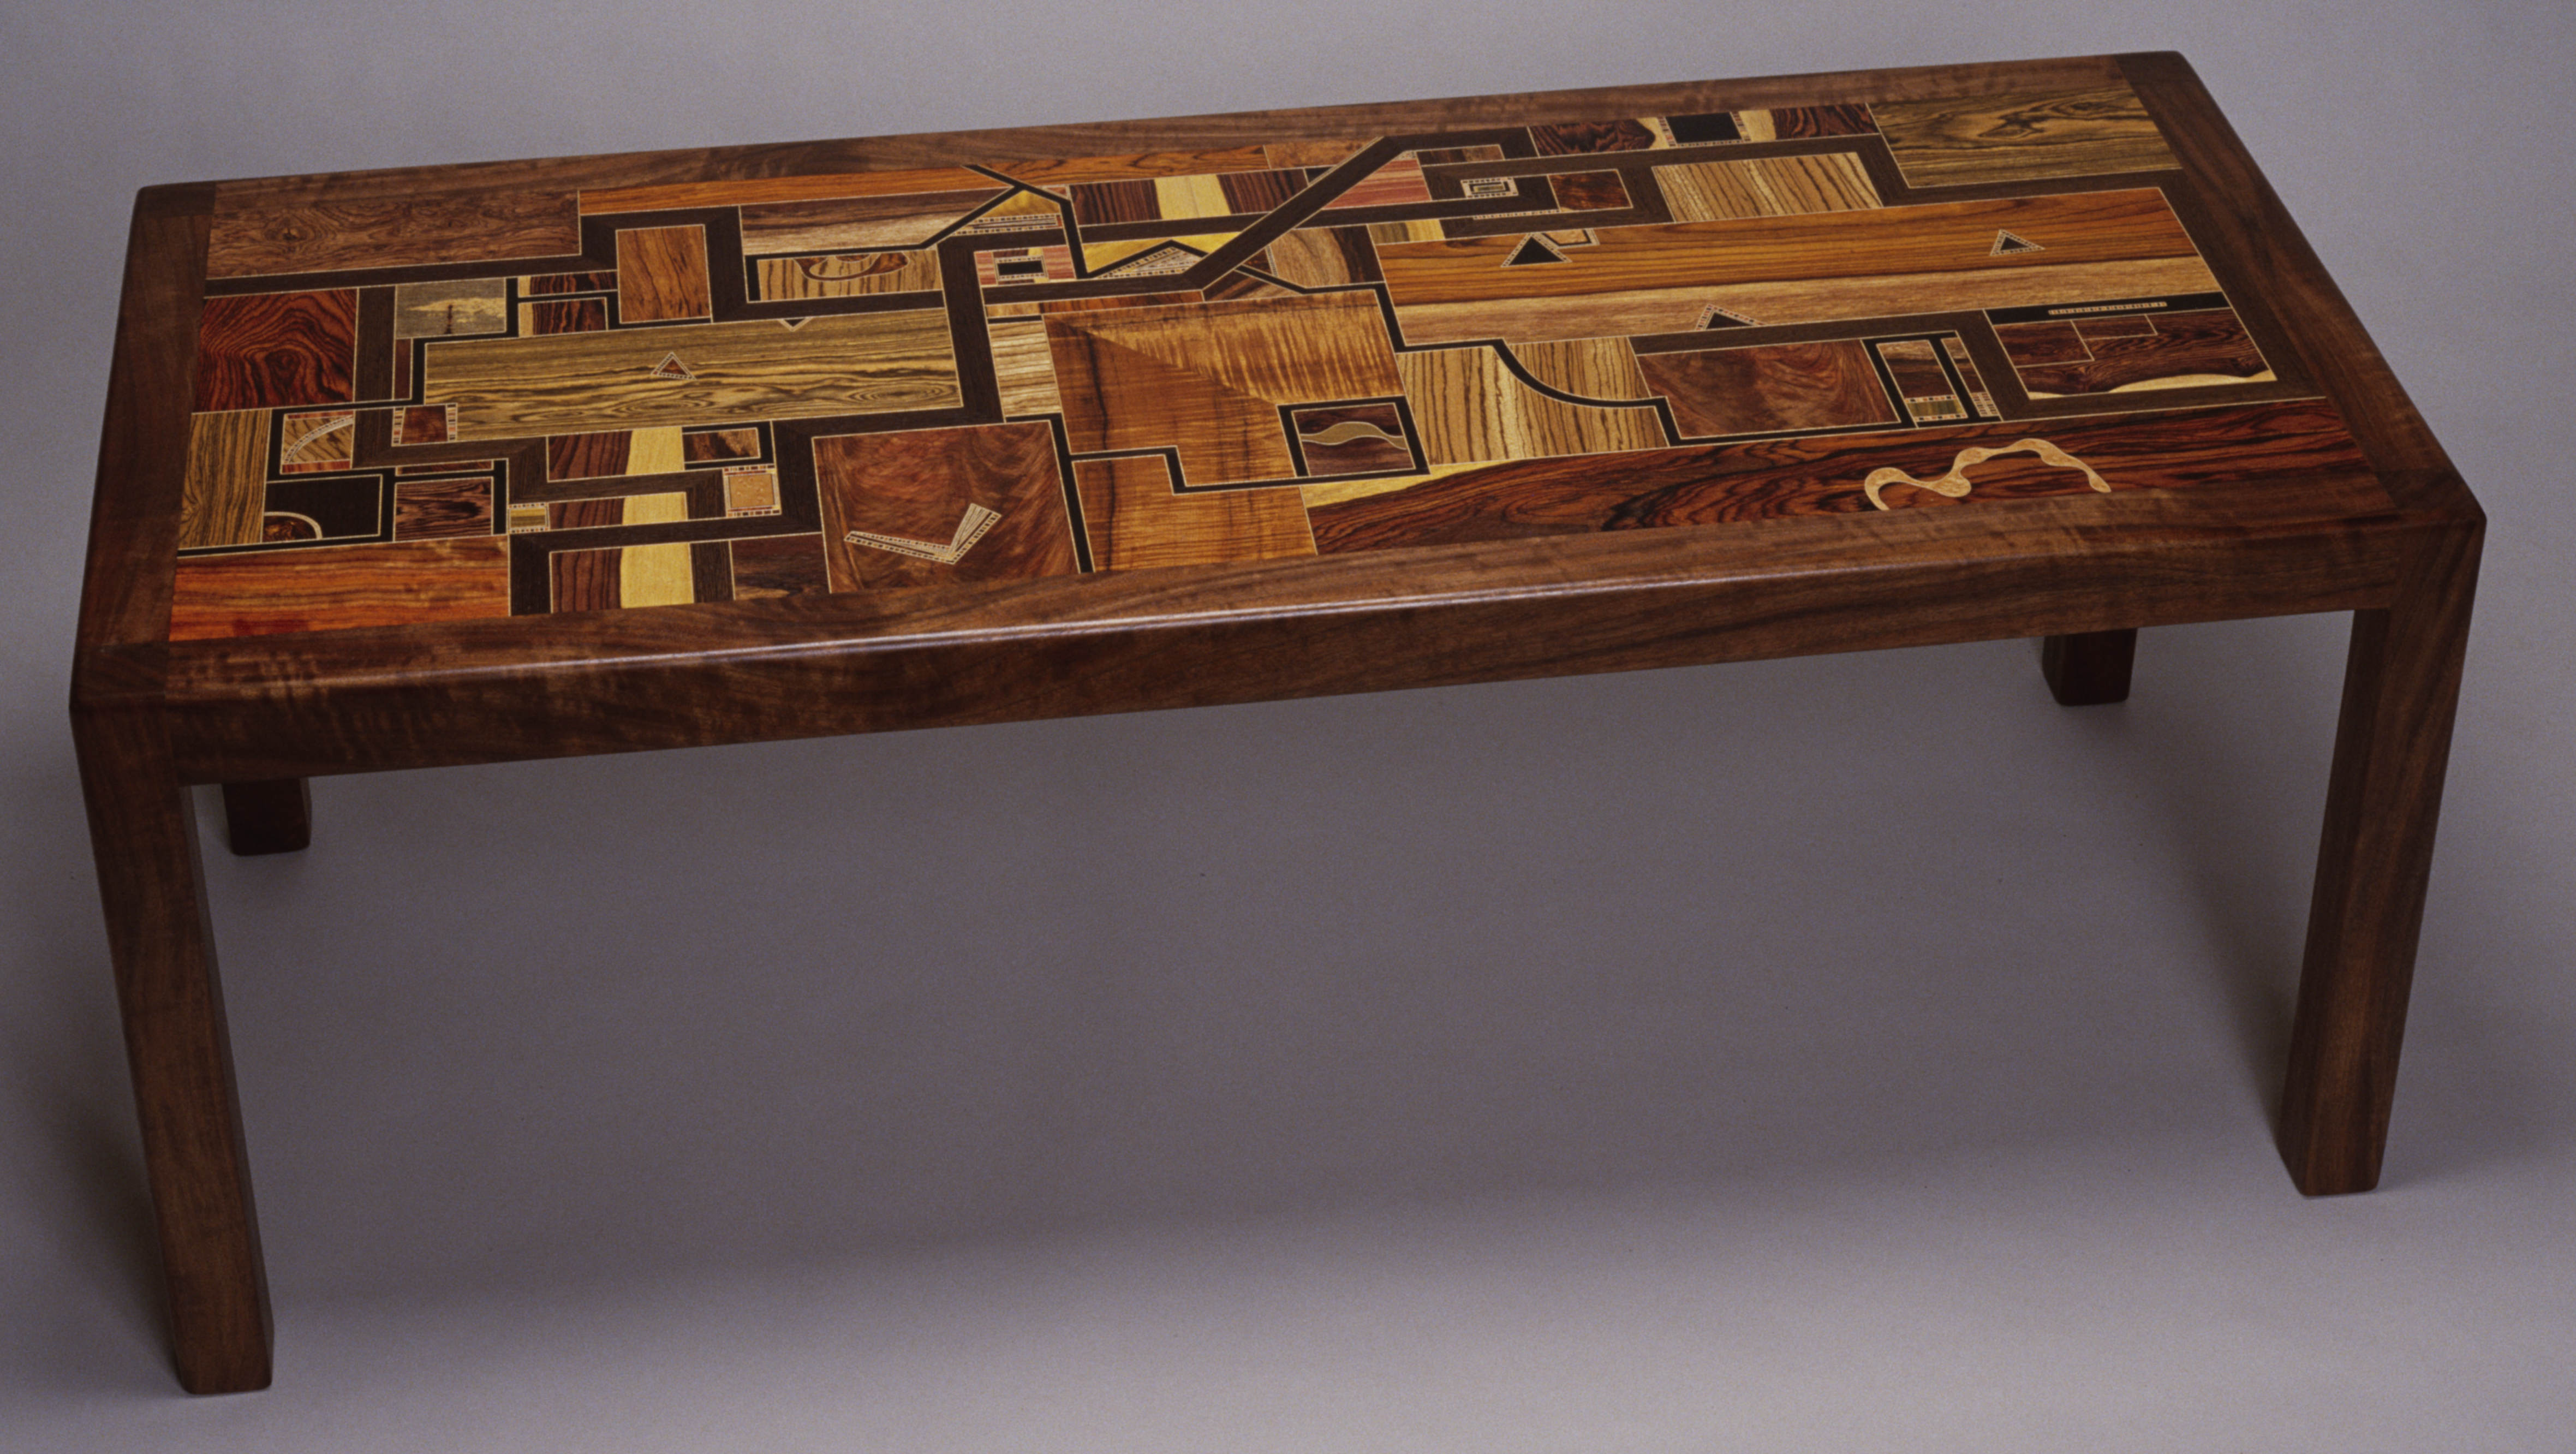 Christopher W Cantwell Wood Art Inlay And Sculpture